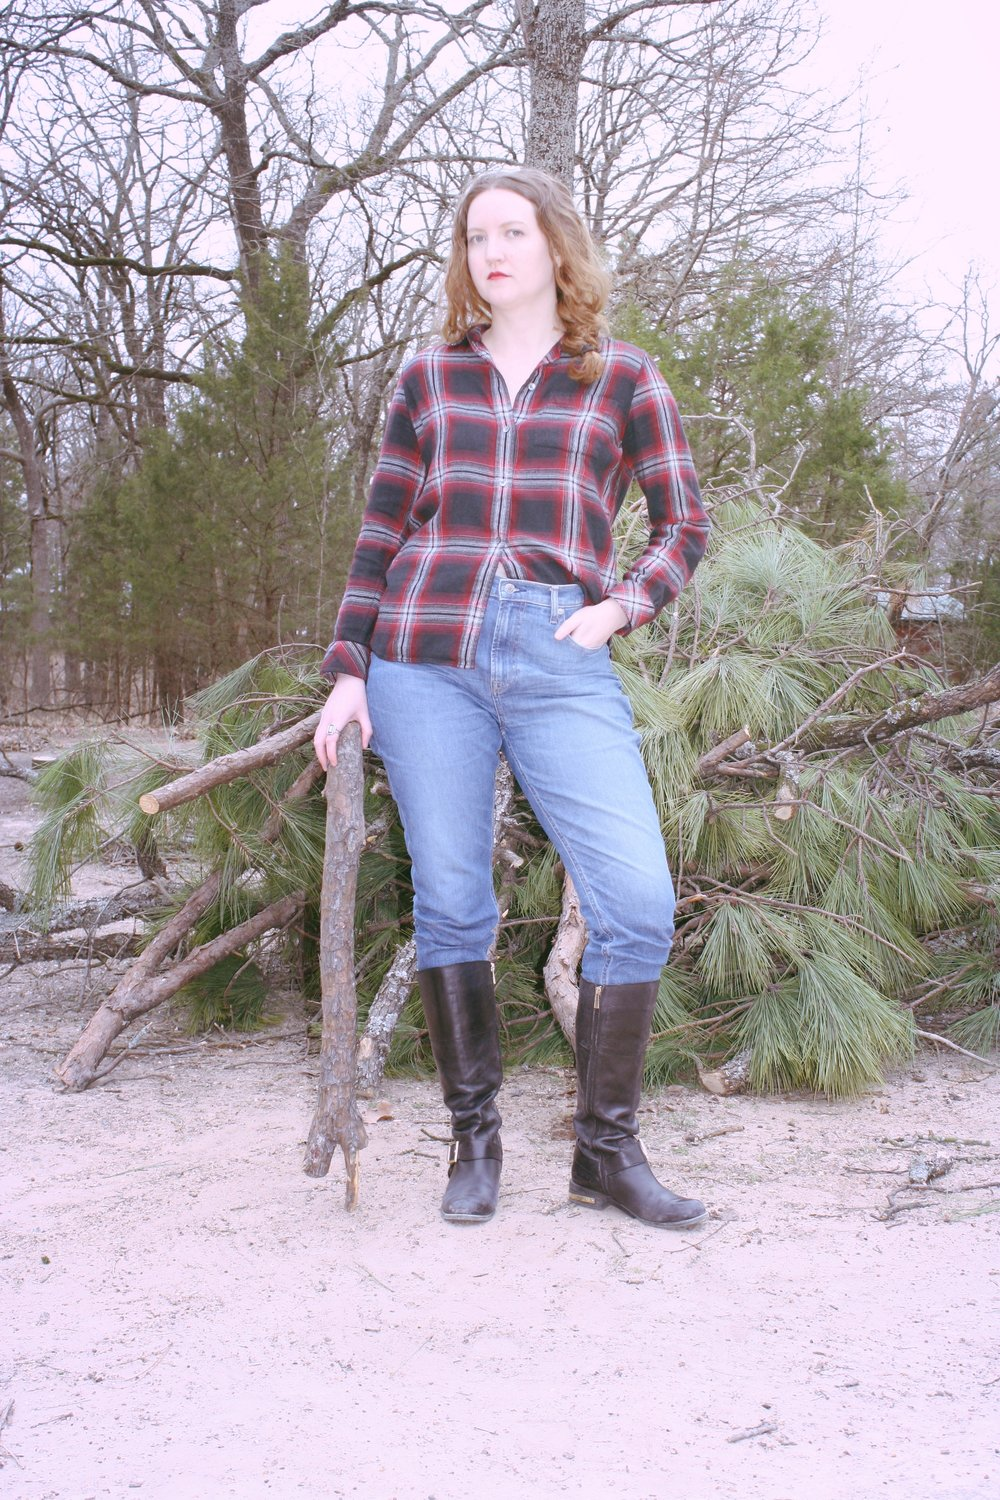 Mad for Plaid Winter Plaid Outfits Madewell Plaid Button Down Everlane Denim Vince Camuto Boots.JPG